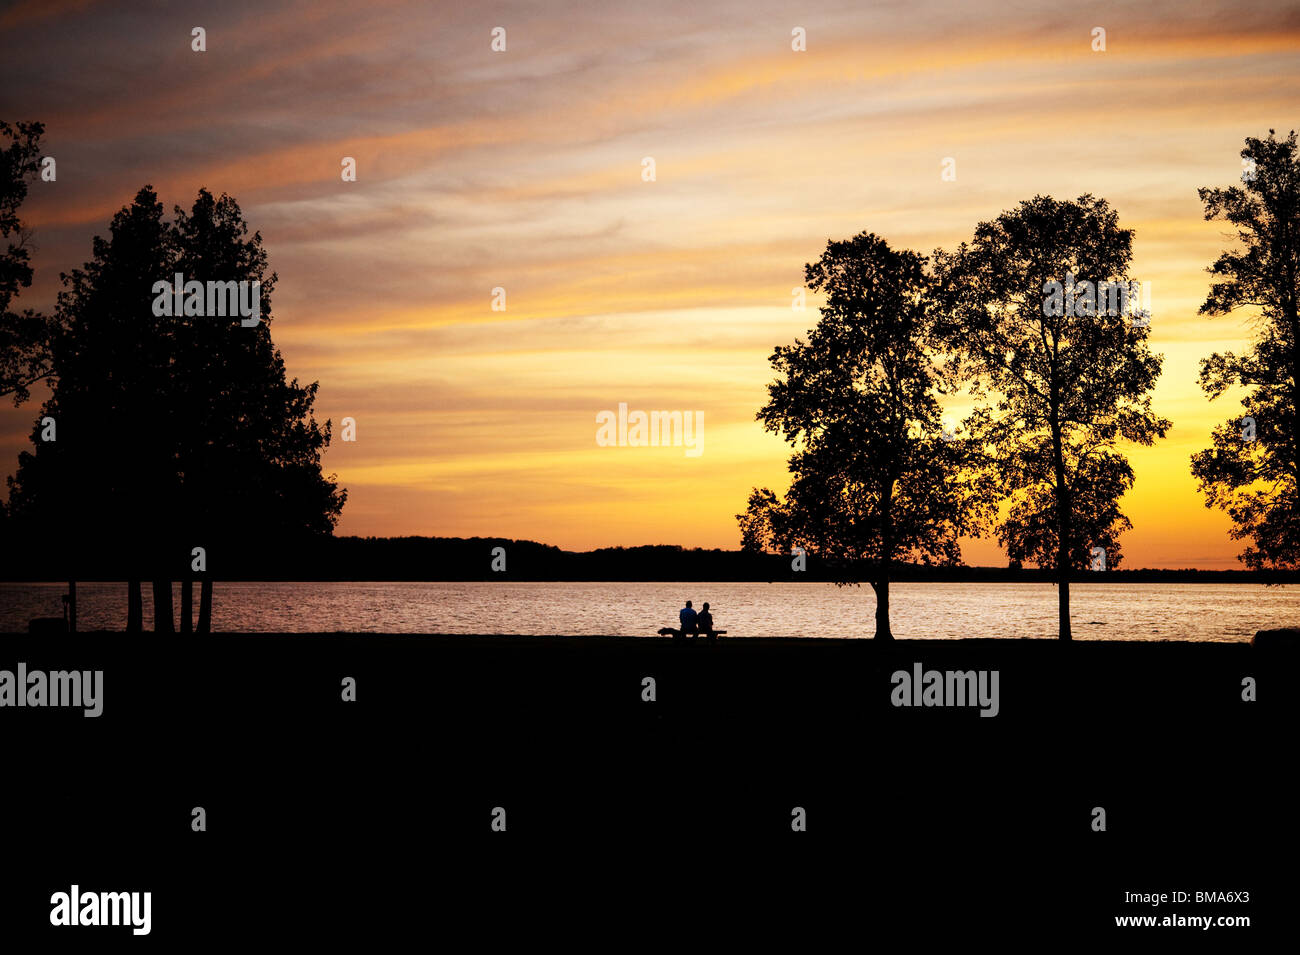 Elderly couple, silhouetted, sitting on a bench by lake at sunset - Stock Image